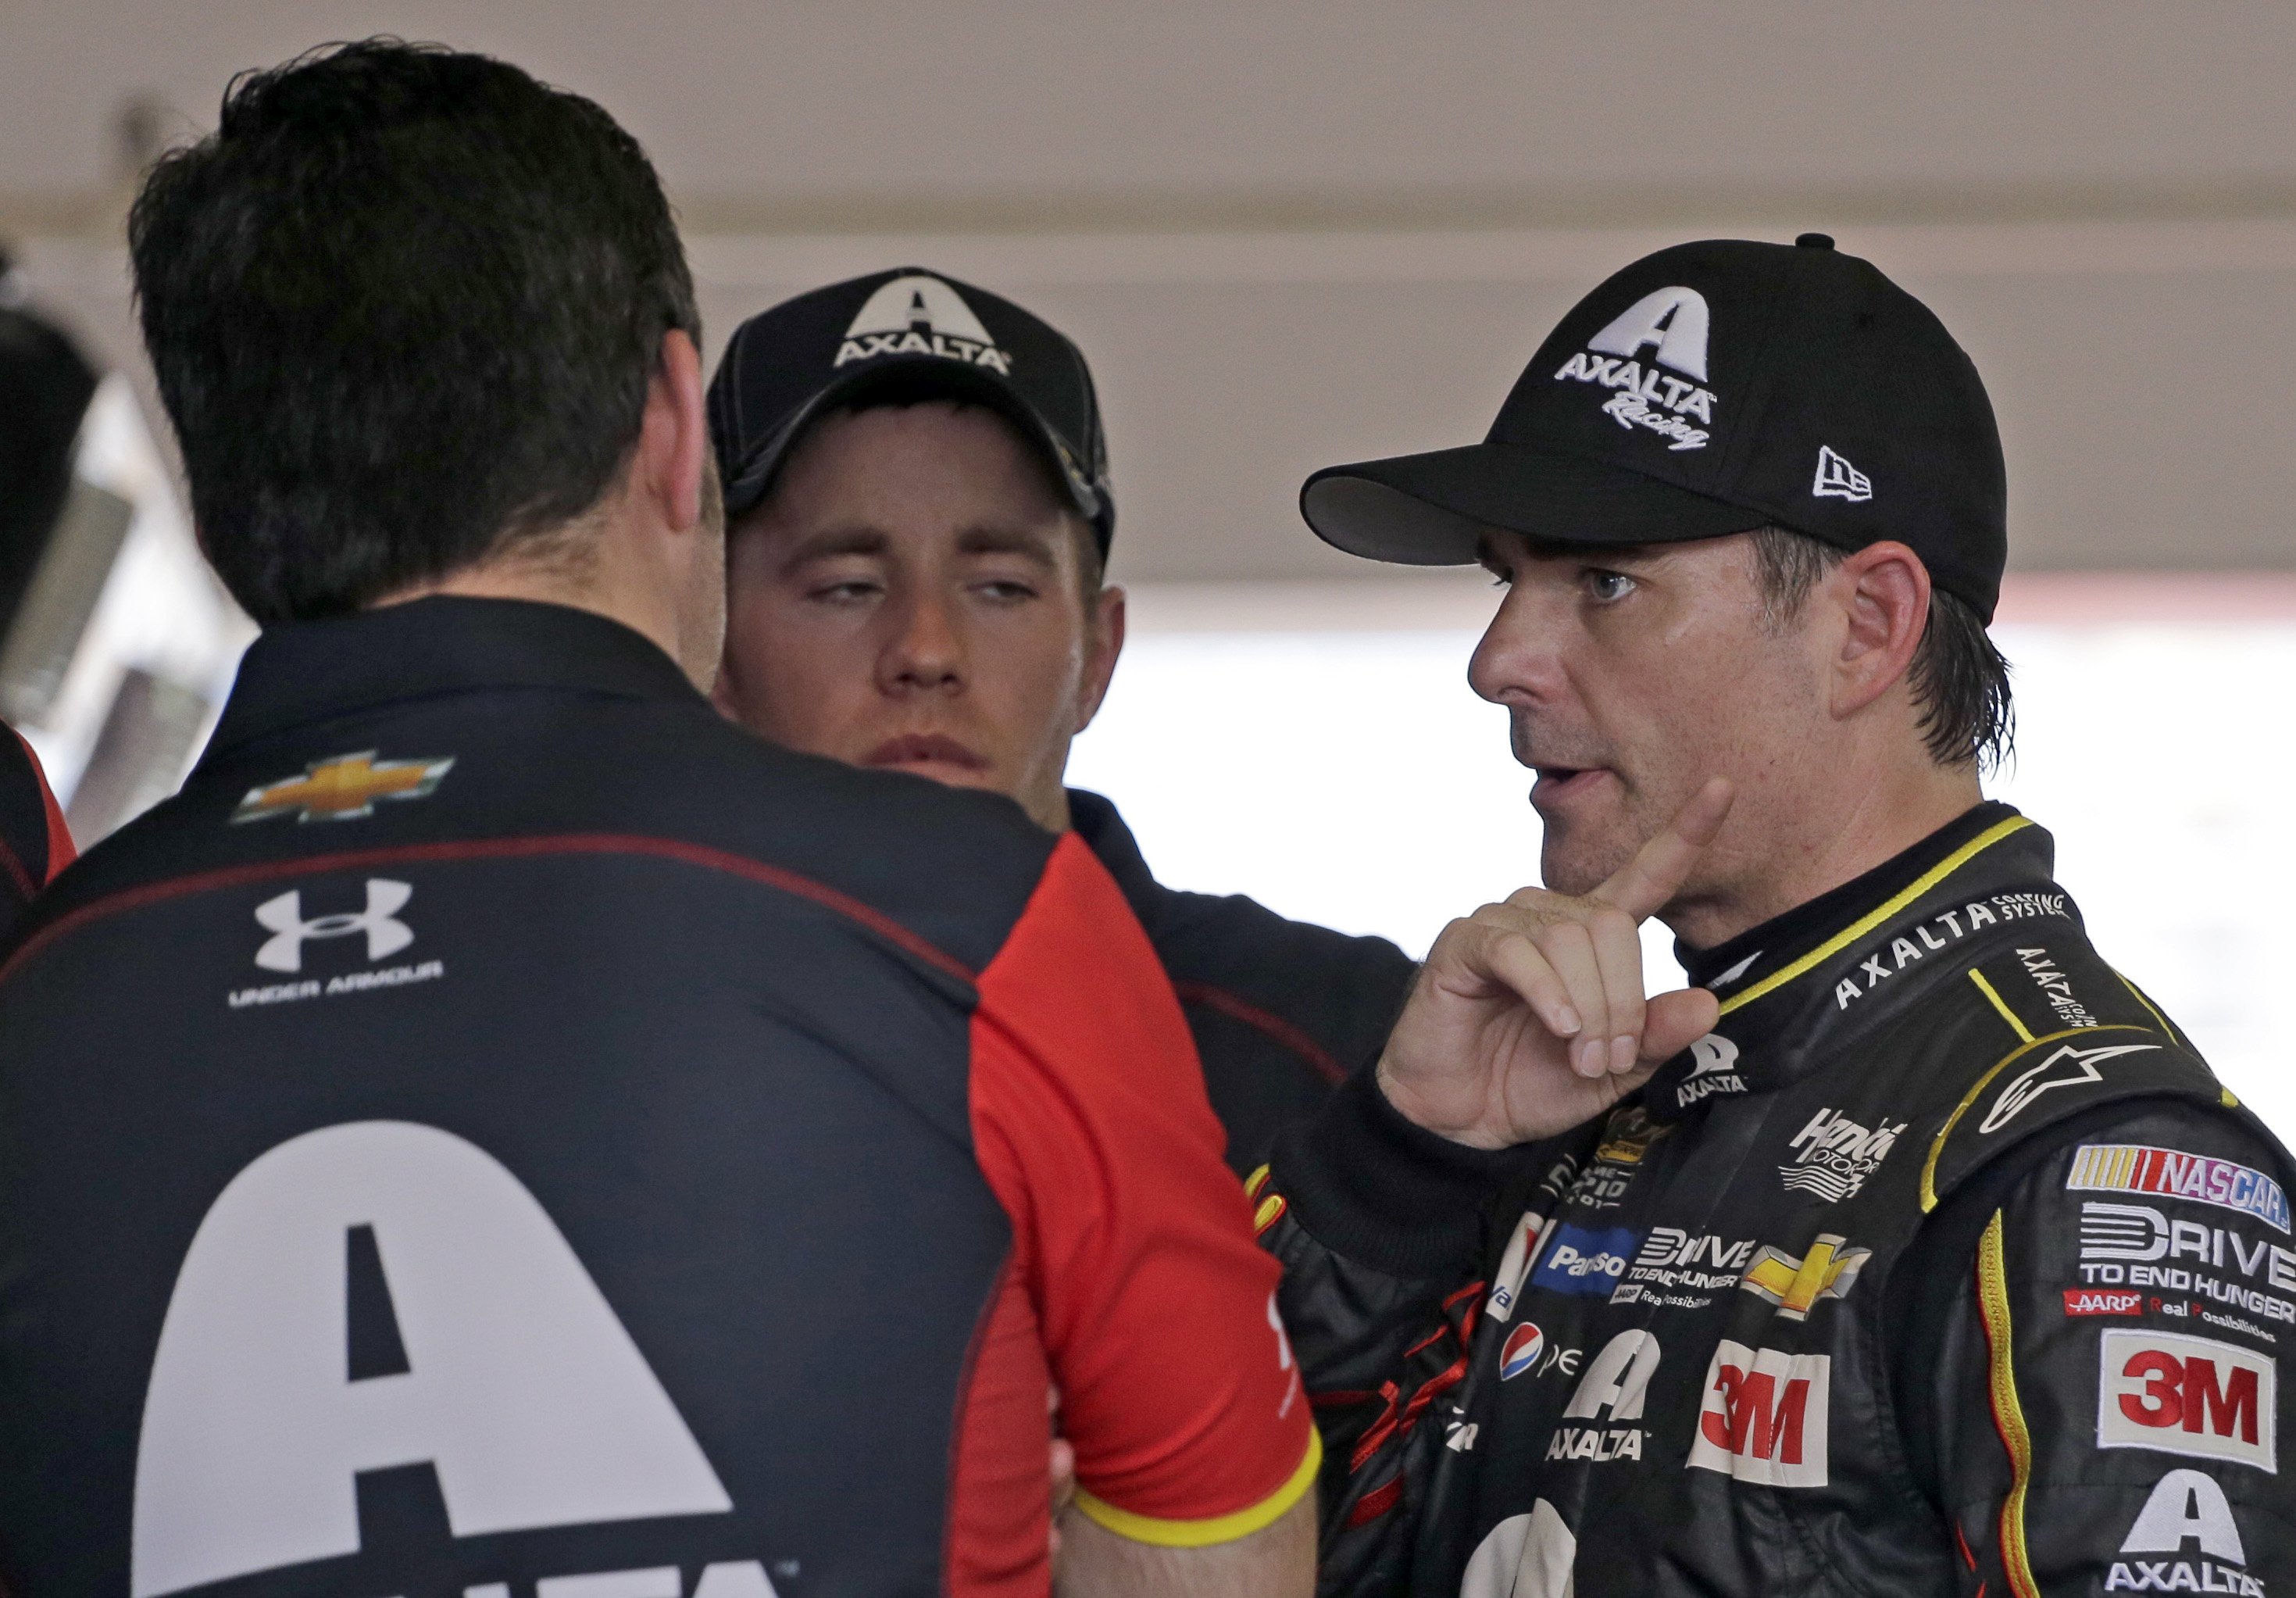 Jeff Gordon, right, talks to crew members after practice for Sunday's NASCAR Sprint Cup Series auto race, Saturday, Nov. 21, 2015, at Homestead-Miami Speedway in Homestead, Fla. (AP Photo/Terry Renna)